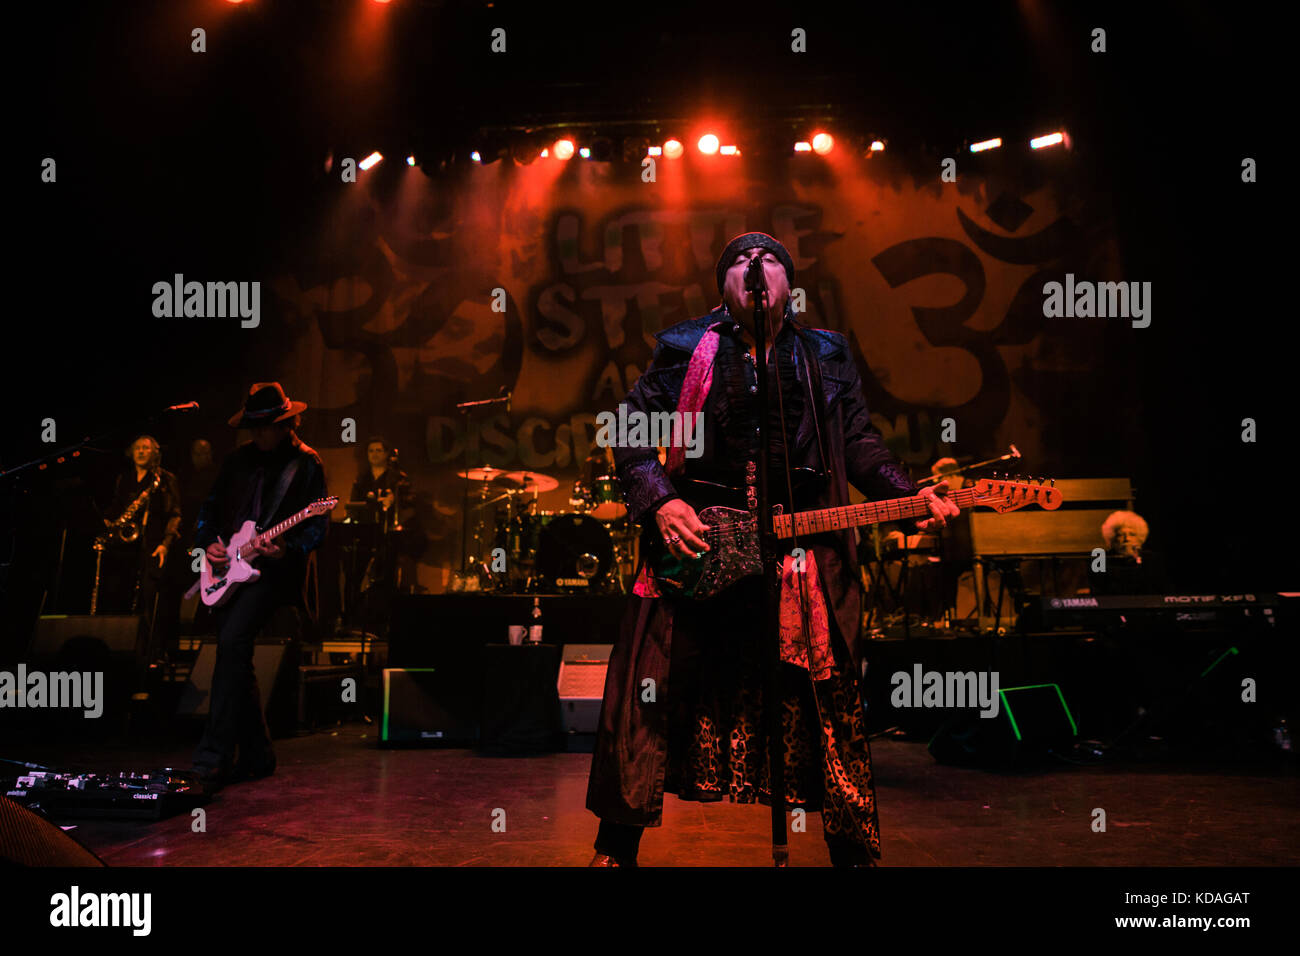 Little Steven and the Disciples of Soul perform at the Danforth Music Hall live in Toronto - Stock Image